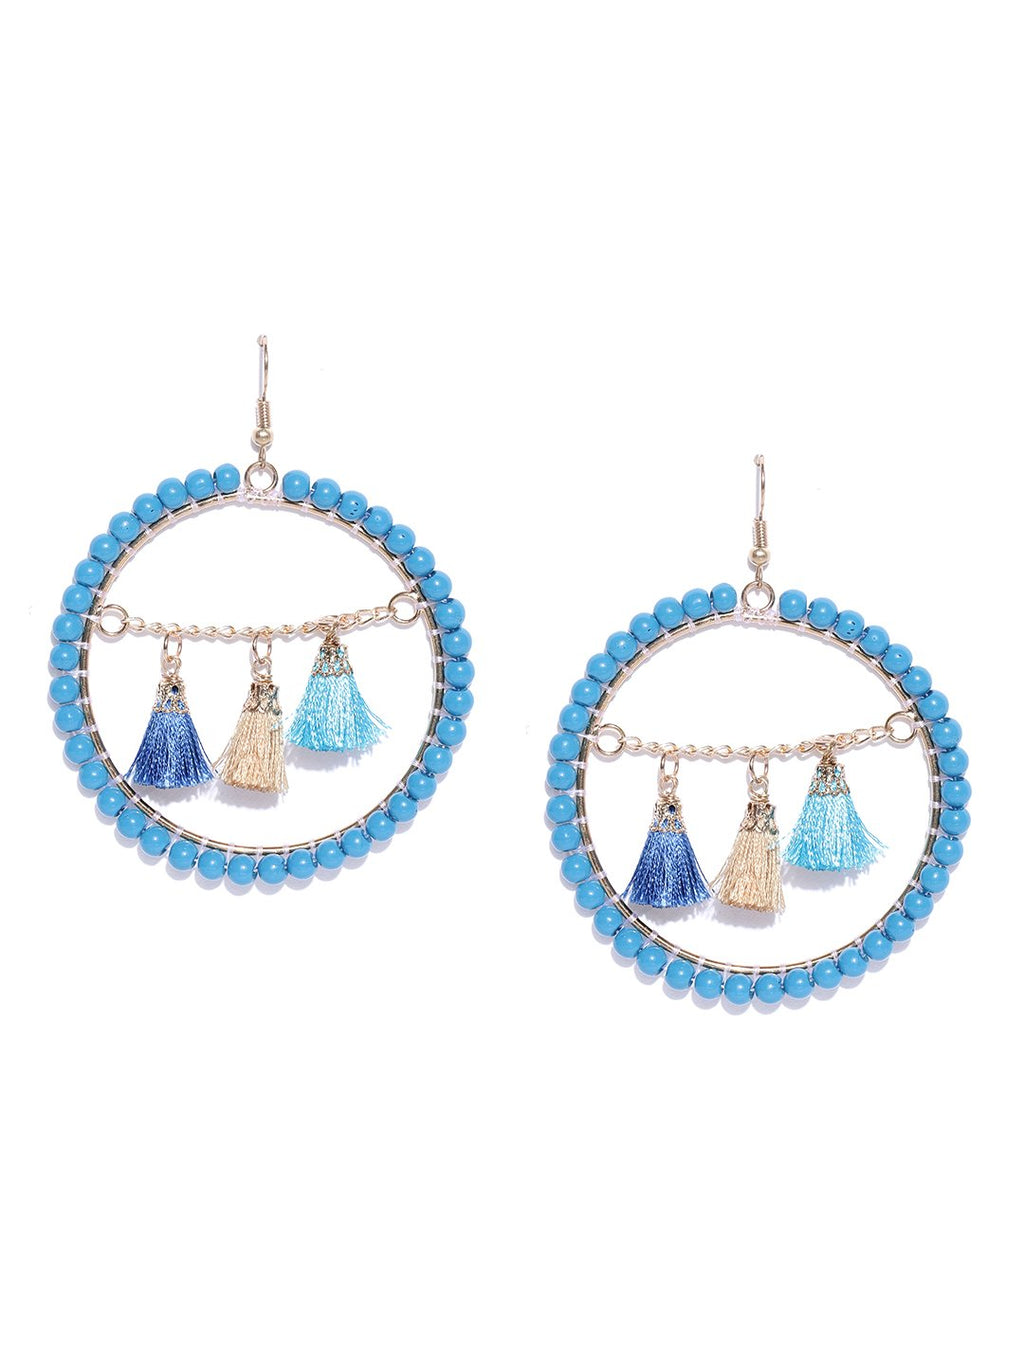 Blueberry gold and blue beads studded drop earring has tassel